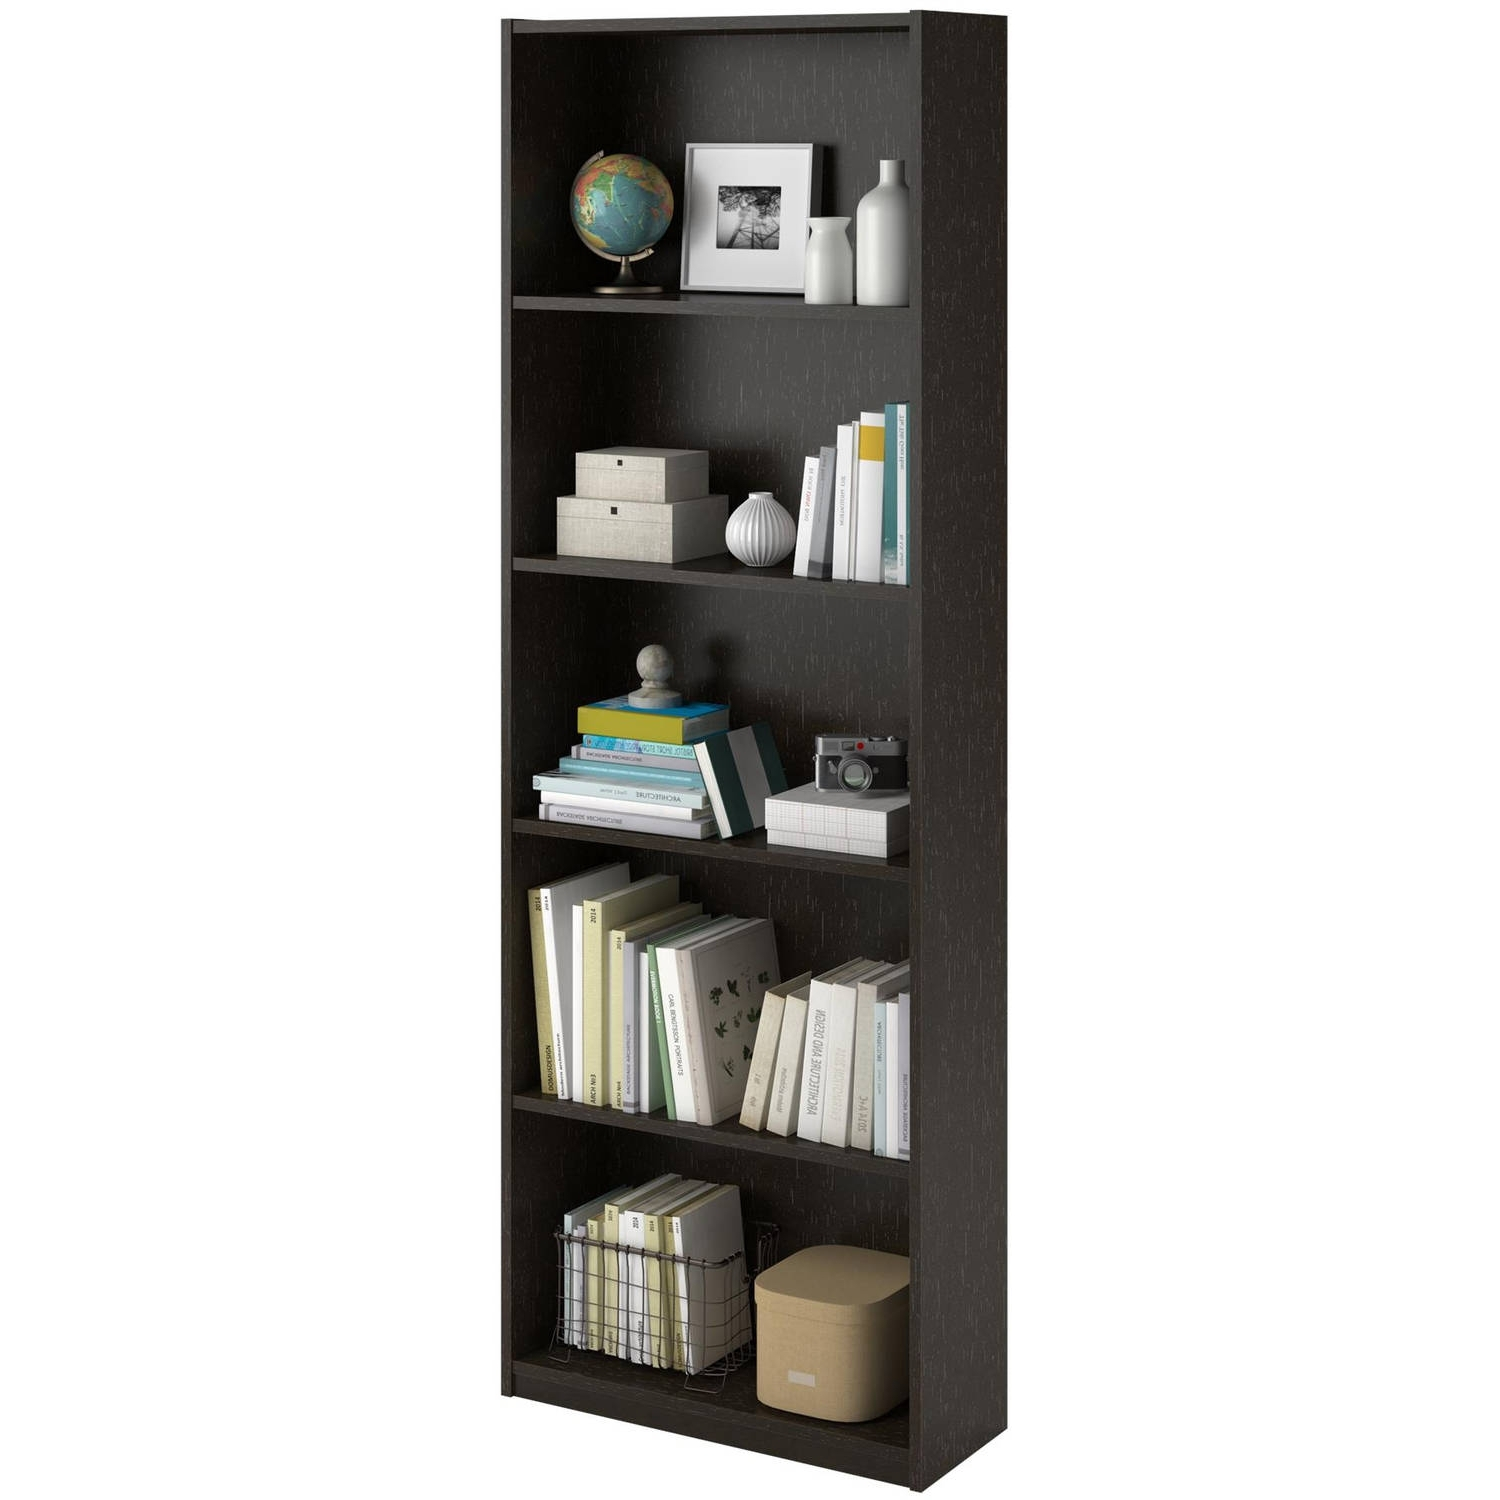 Well Liked Ameriwood 5 Shelf Bookcases, Set Of 2 (mix And Match) – Walmart Within White 5 Shelf Bookcases (View 14 of 15)